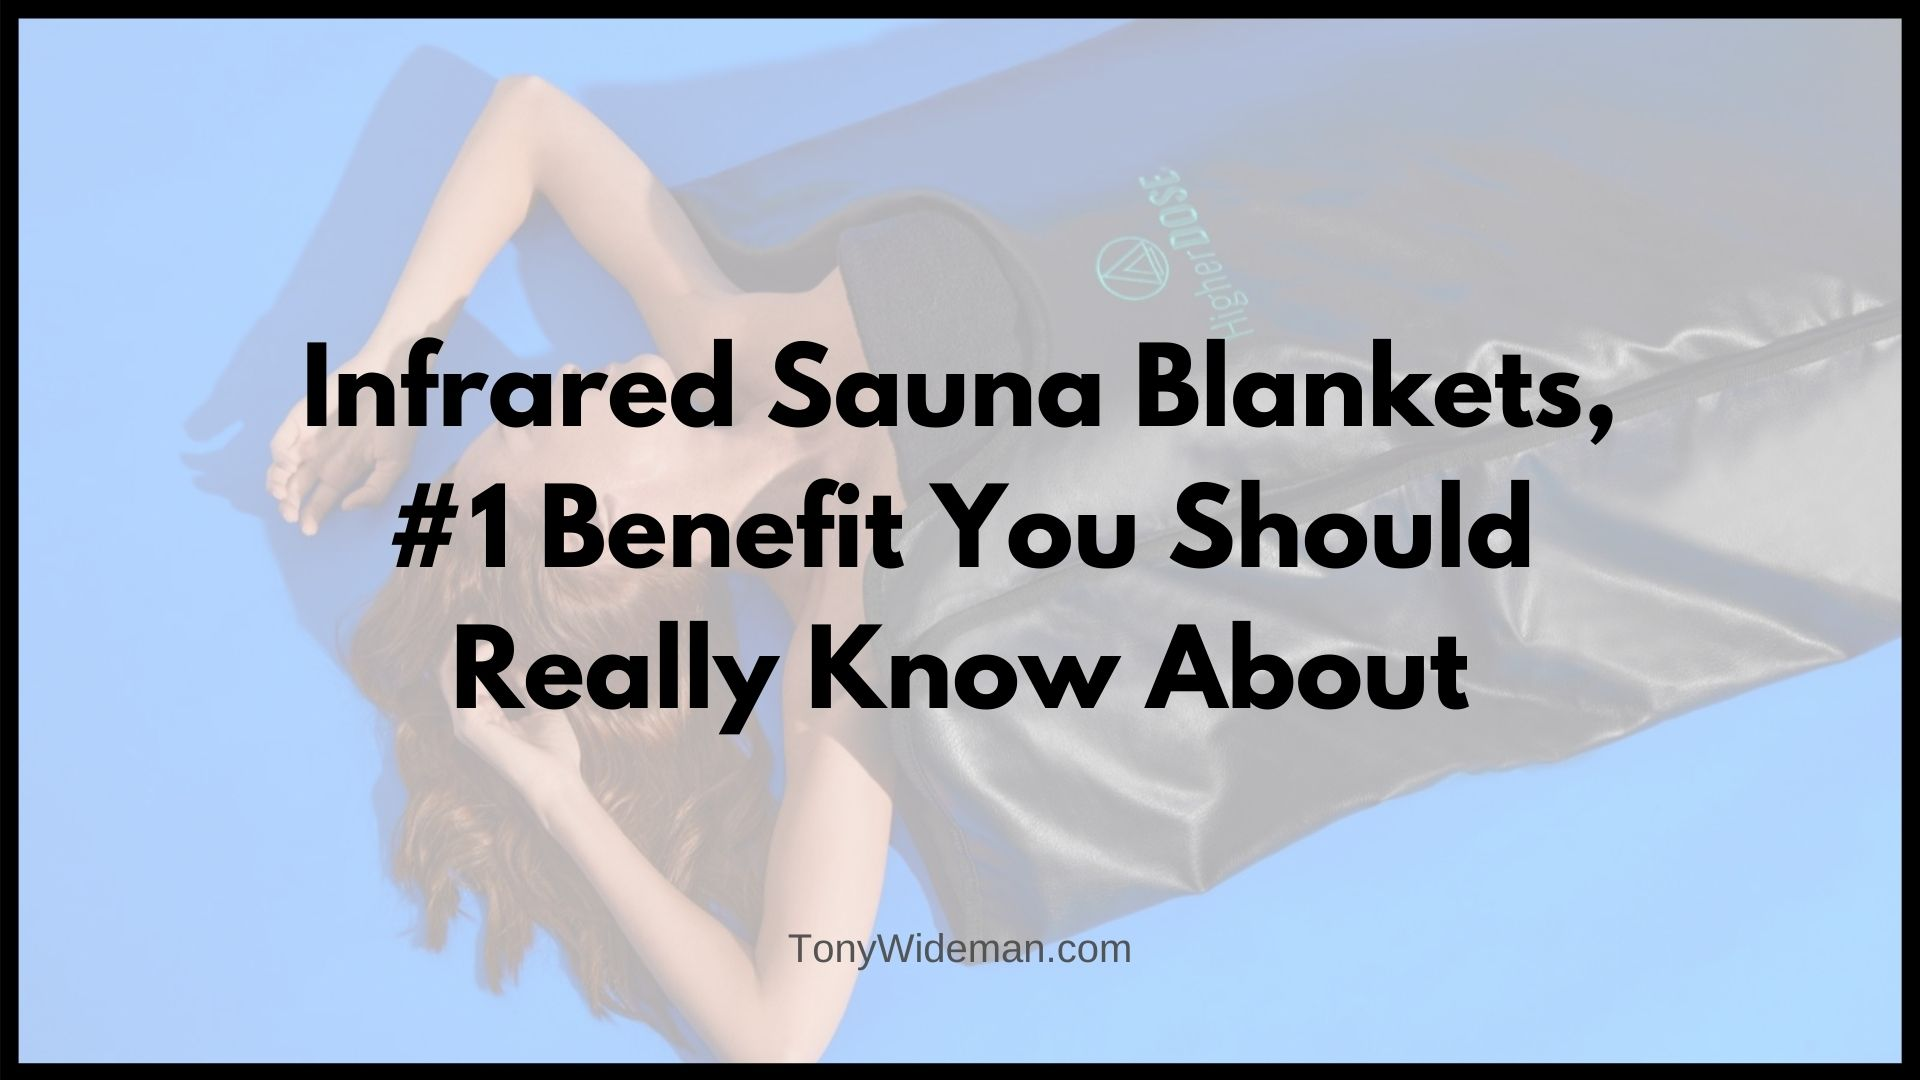 Infrared Sauna Blankets, #1 Benefit You Should Really Know About